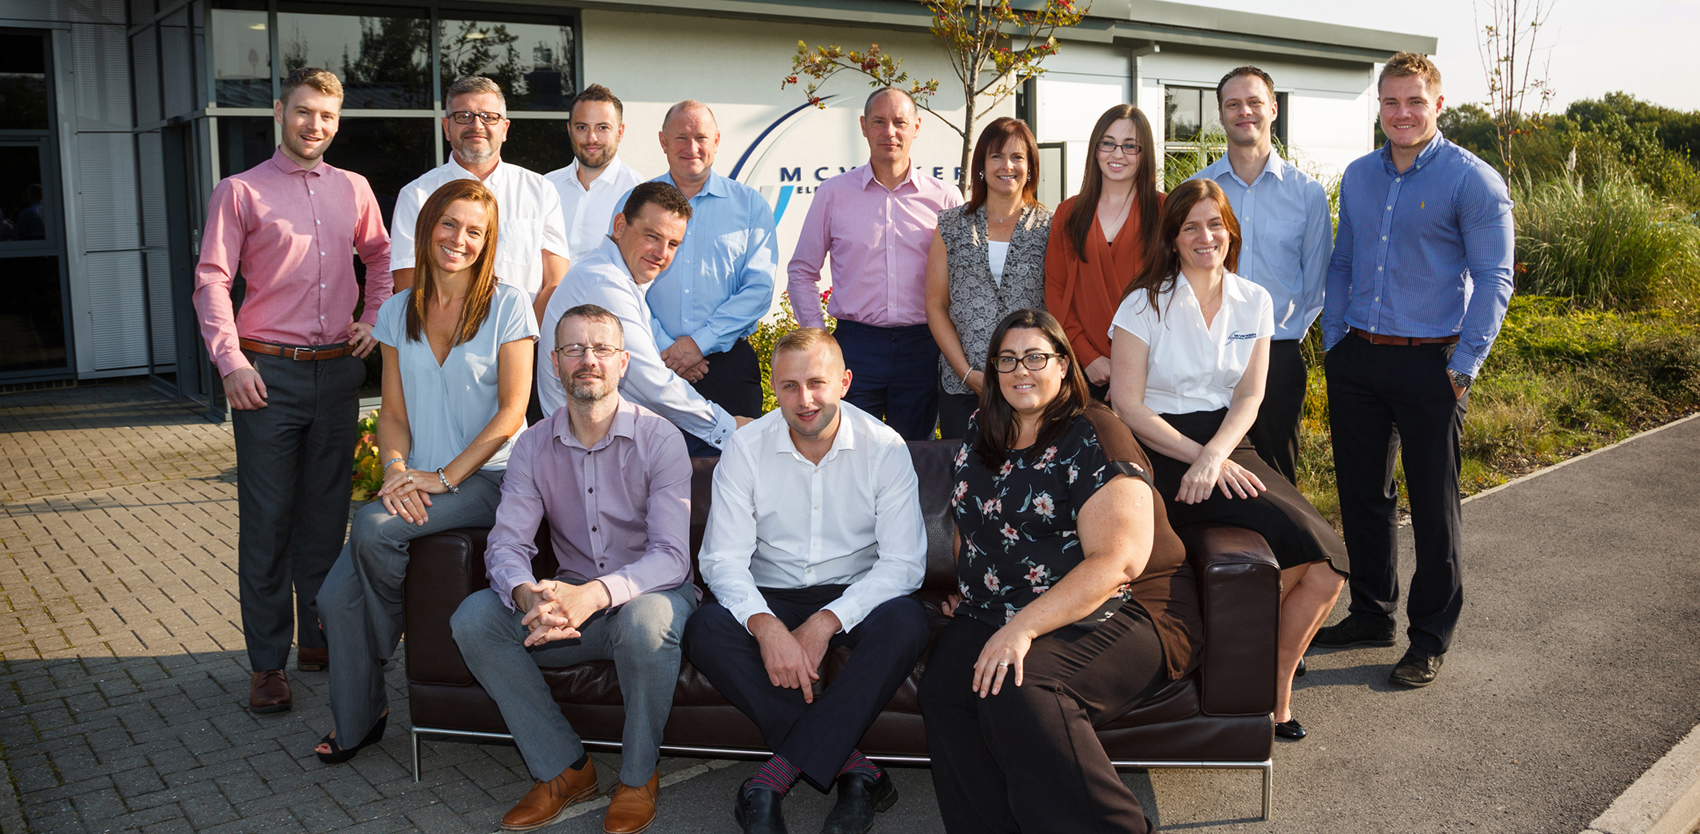 mcvickers-team-of-staff-group